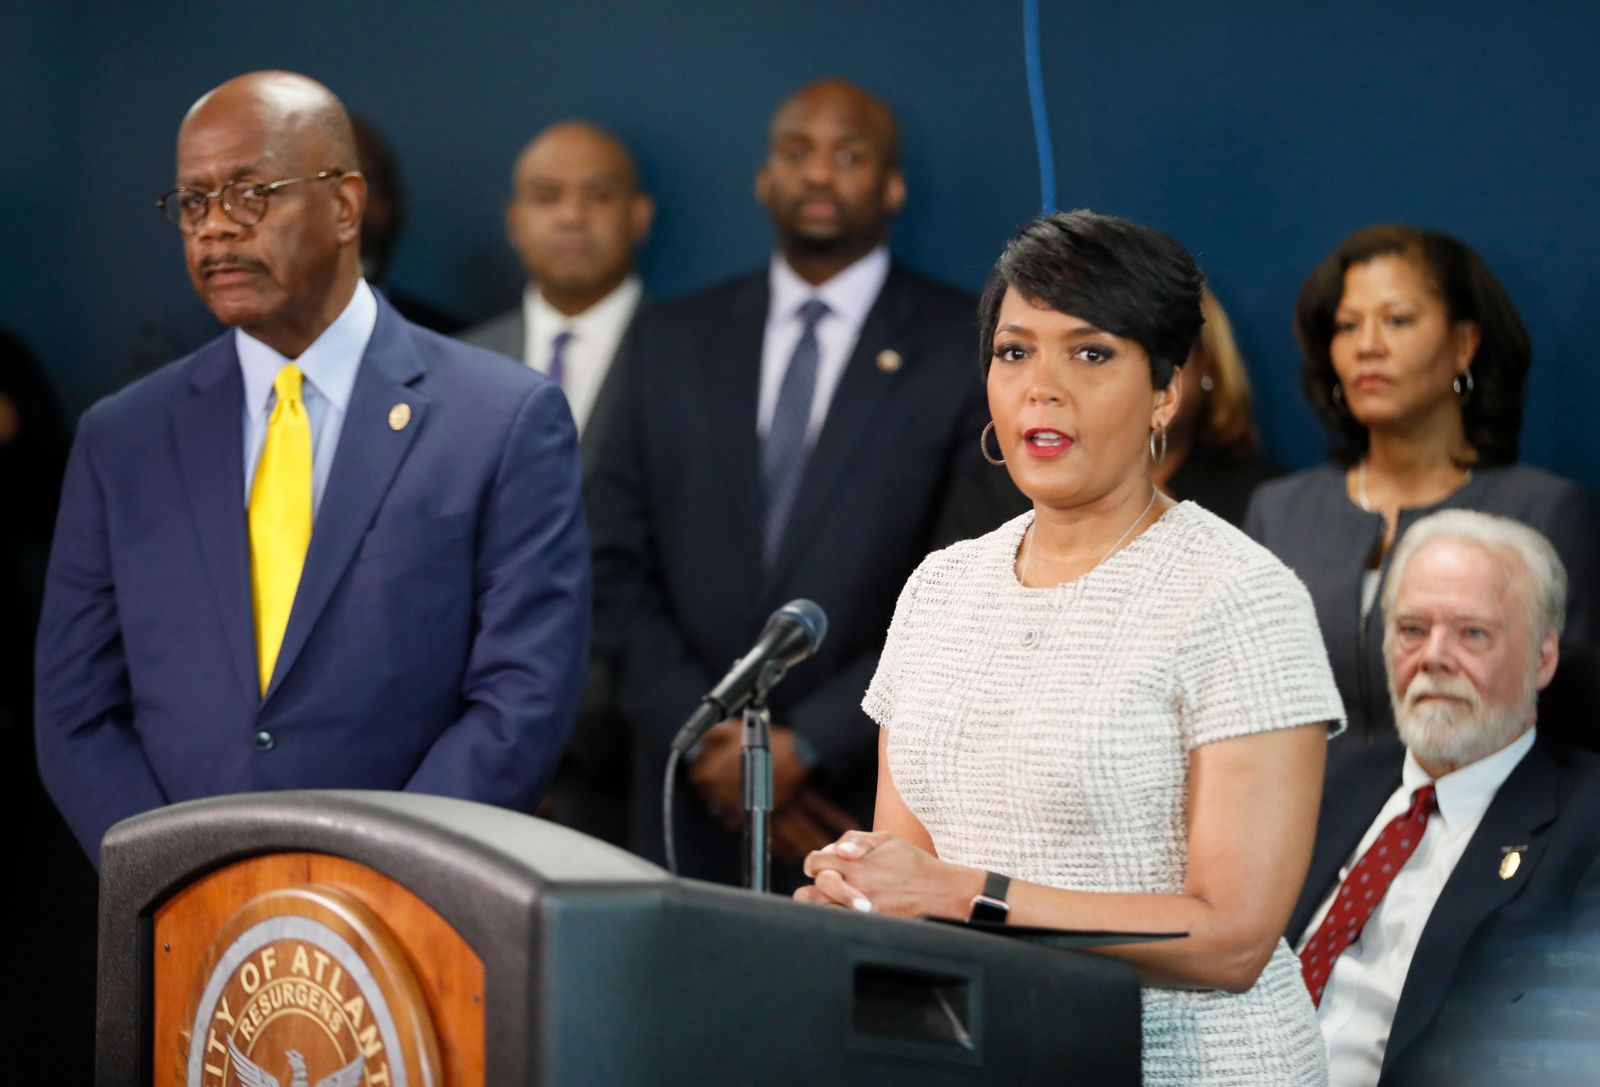 Atlanta Mayor Keisha Lance Bottoms, standing next to Fulton County District Attorney Paul Howard, announces Thursday, March 21, 2019  that officials will take a fresh look at the Atlanta child murders, a string of murders from 1979 to 1981 that terrorized the city's black community. (Bob Andres/Atlanta Journal-Constitution via AP)